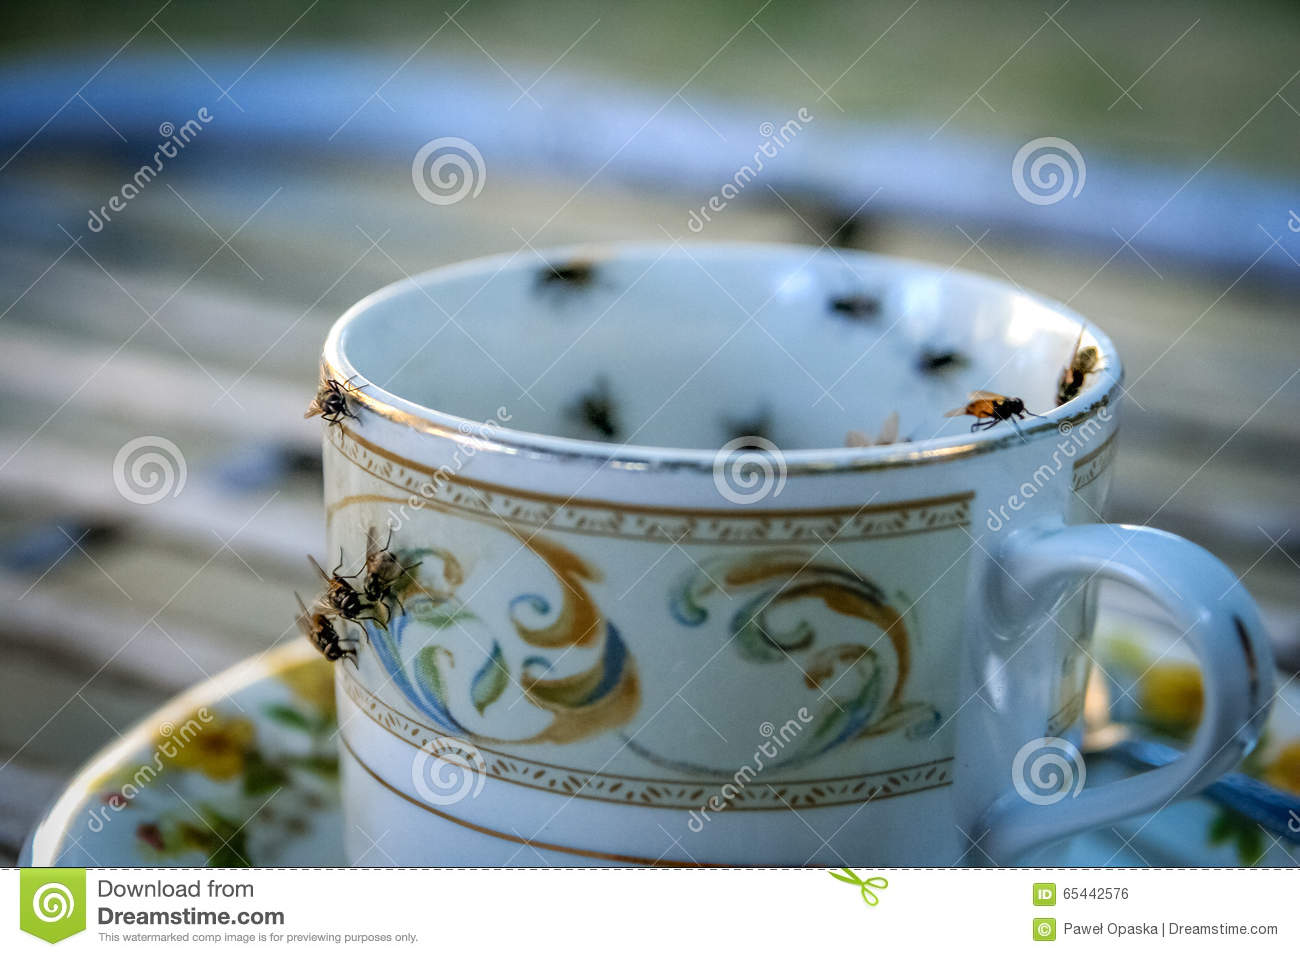 Flies on the cup